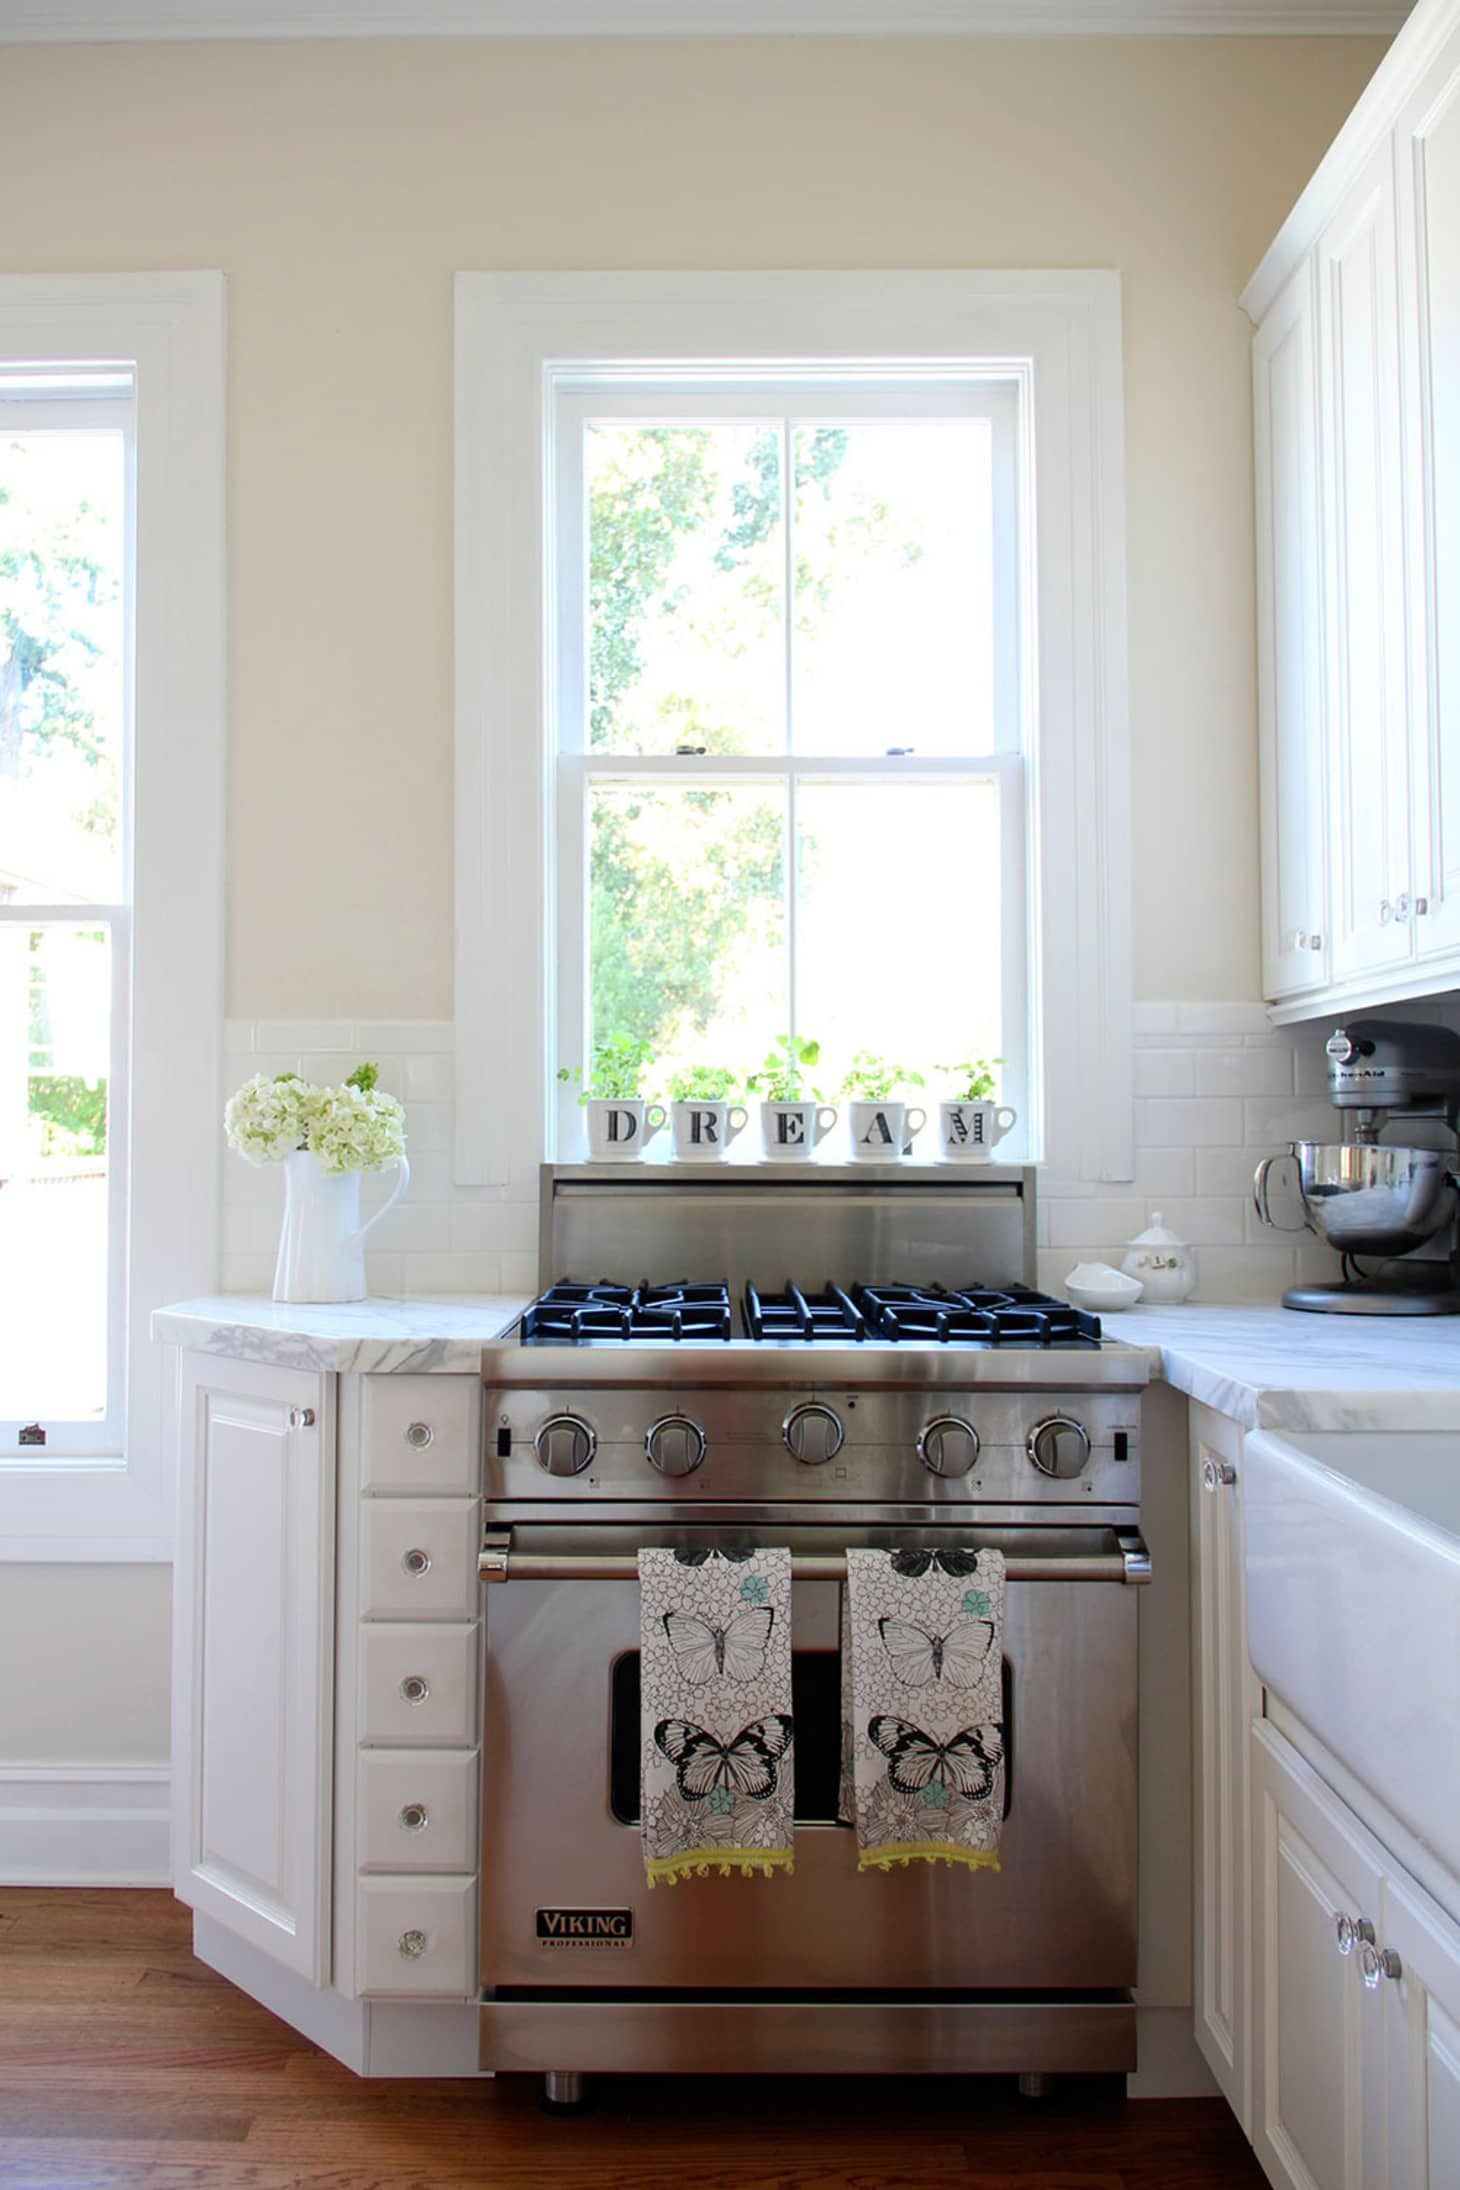 pin by lori on the farmhouse in 2019 kitchen colors kitchen wall colors kitchen remodel on farmhouse kitchen wall colors id=18514